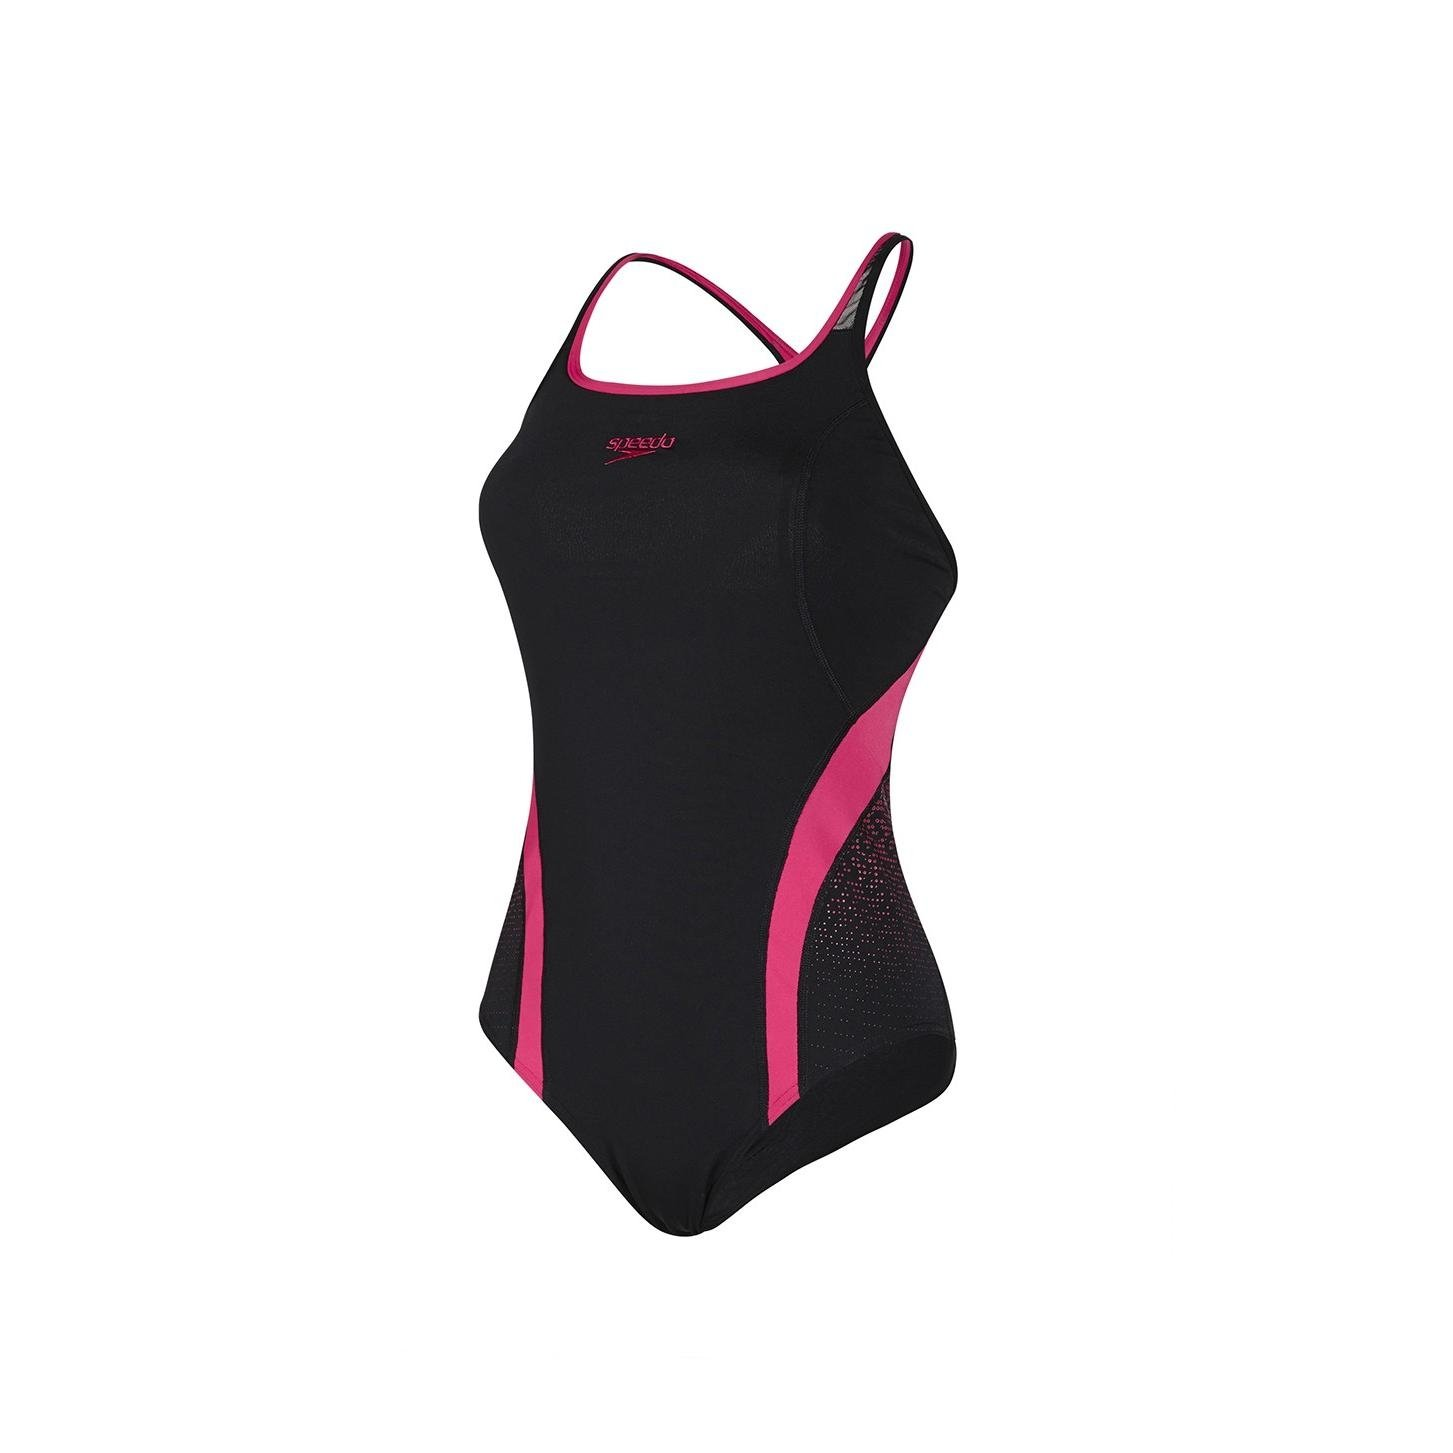 Speedo Damen Badeanzug Fit Pinnacle Kickback kaufen